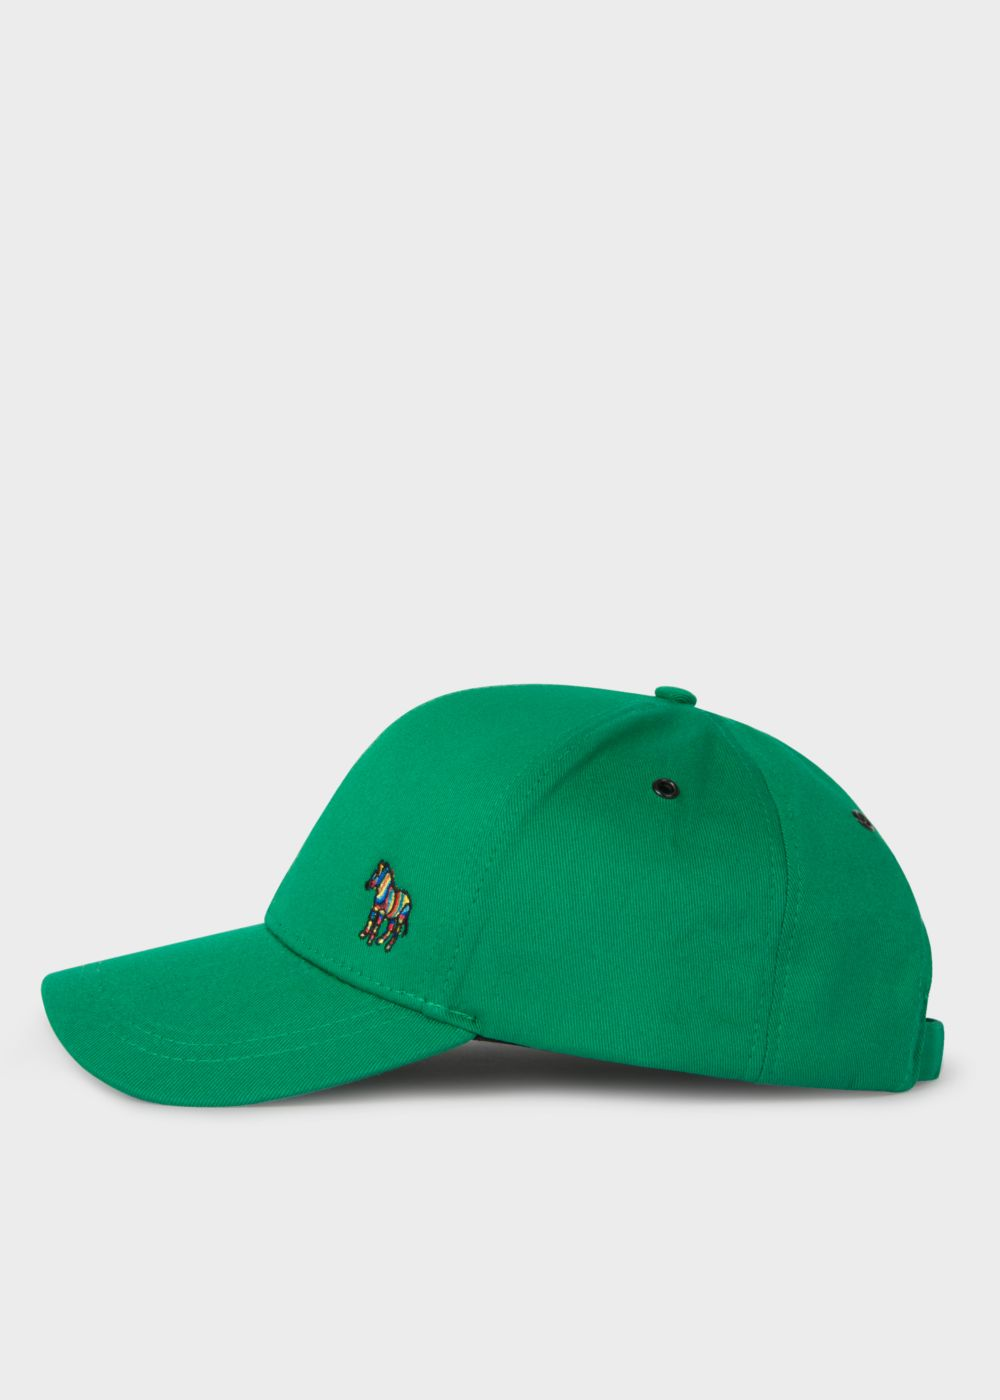 Paul Smith Men's Green Cotton Zebra Logo Baseball Cap